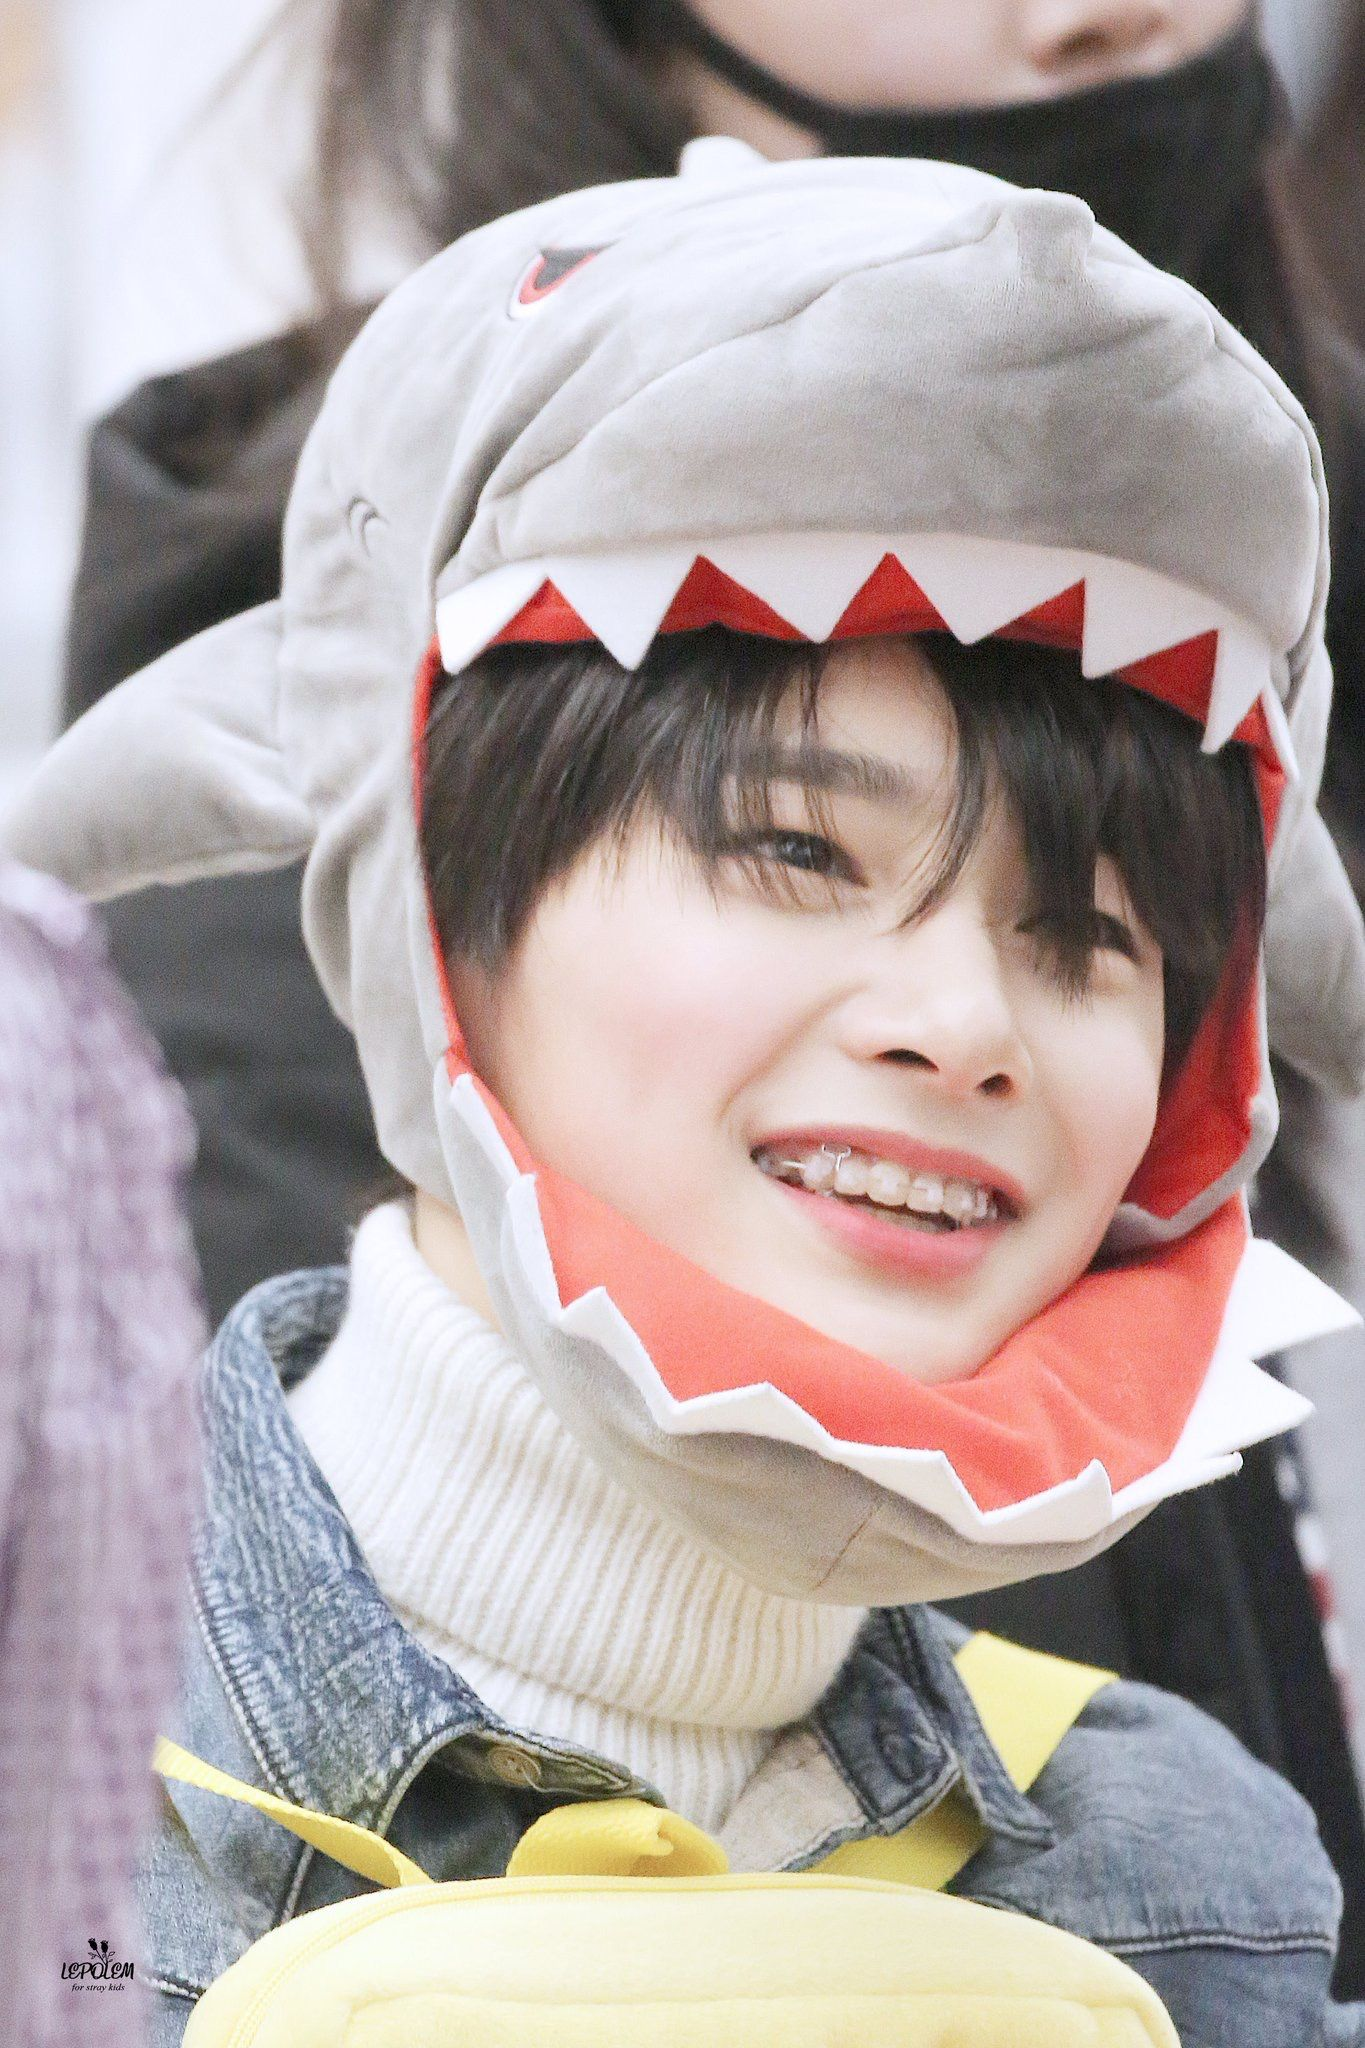 16 stray kids jeongin in